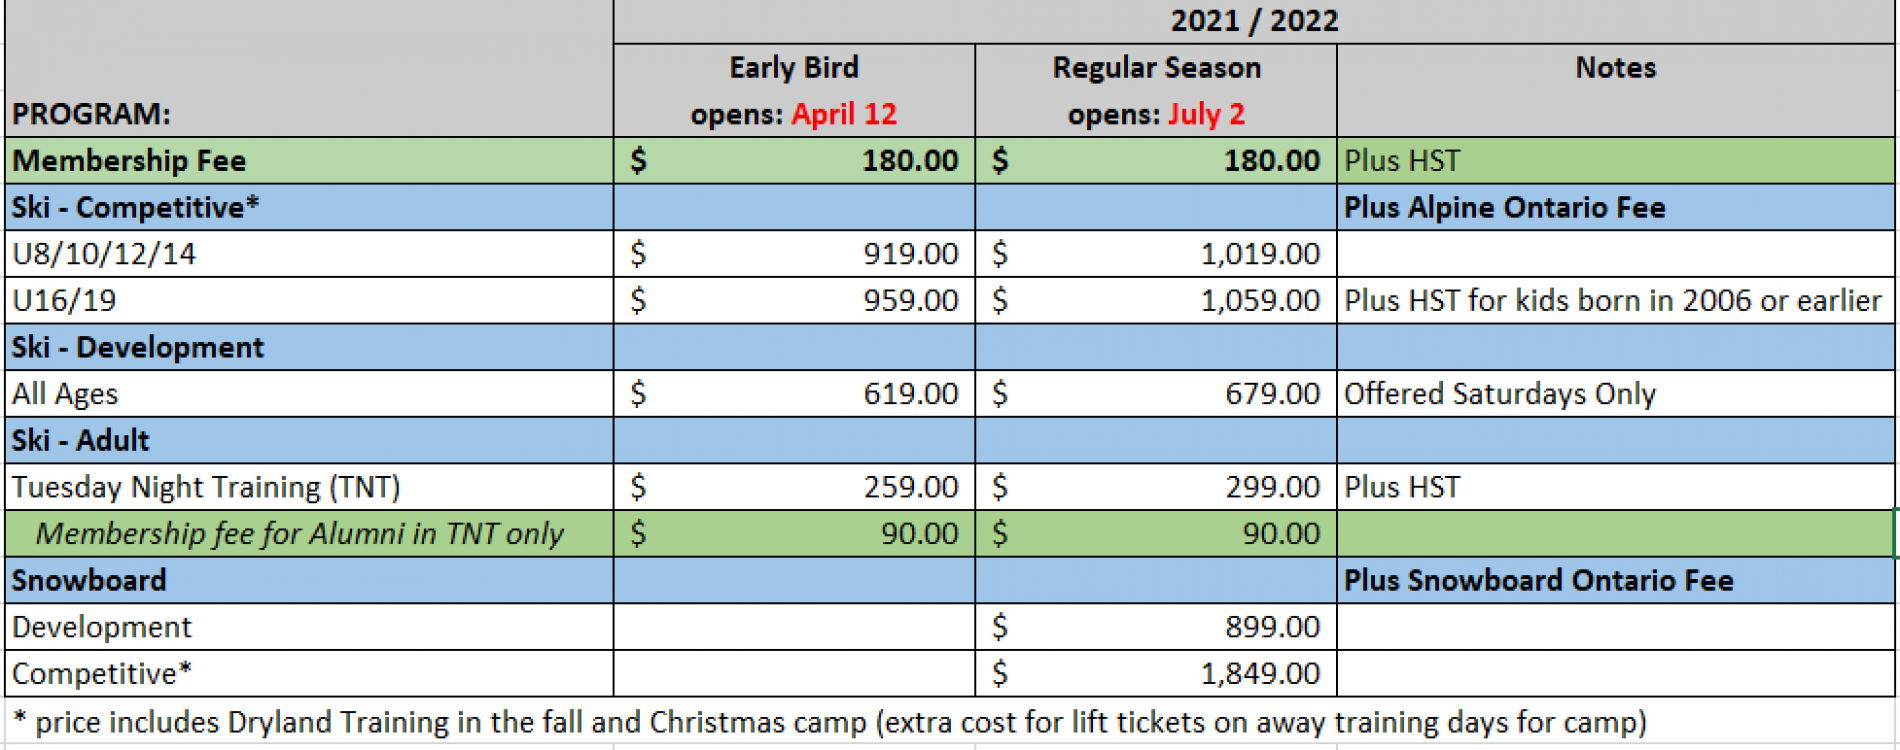 http://miltonheights.com/wp-content/uploads/2021/04/Program-fees-21_22-updated-1900x750.png